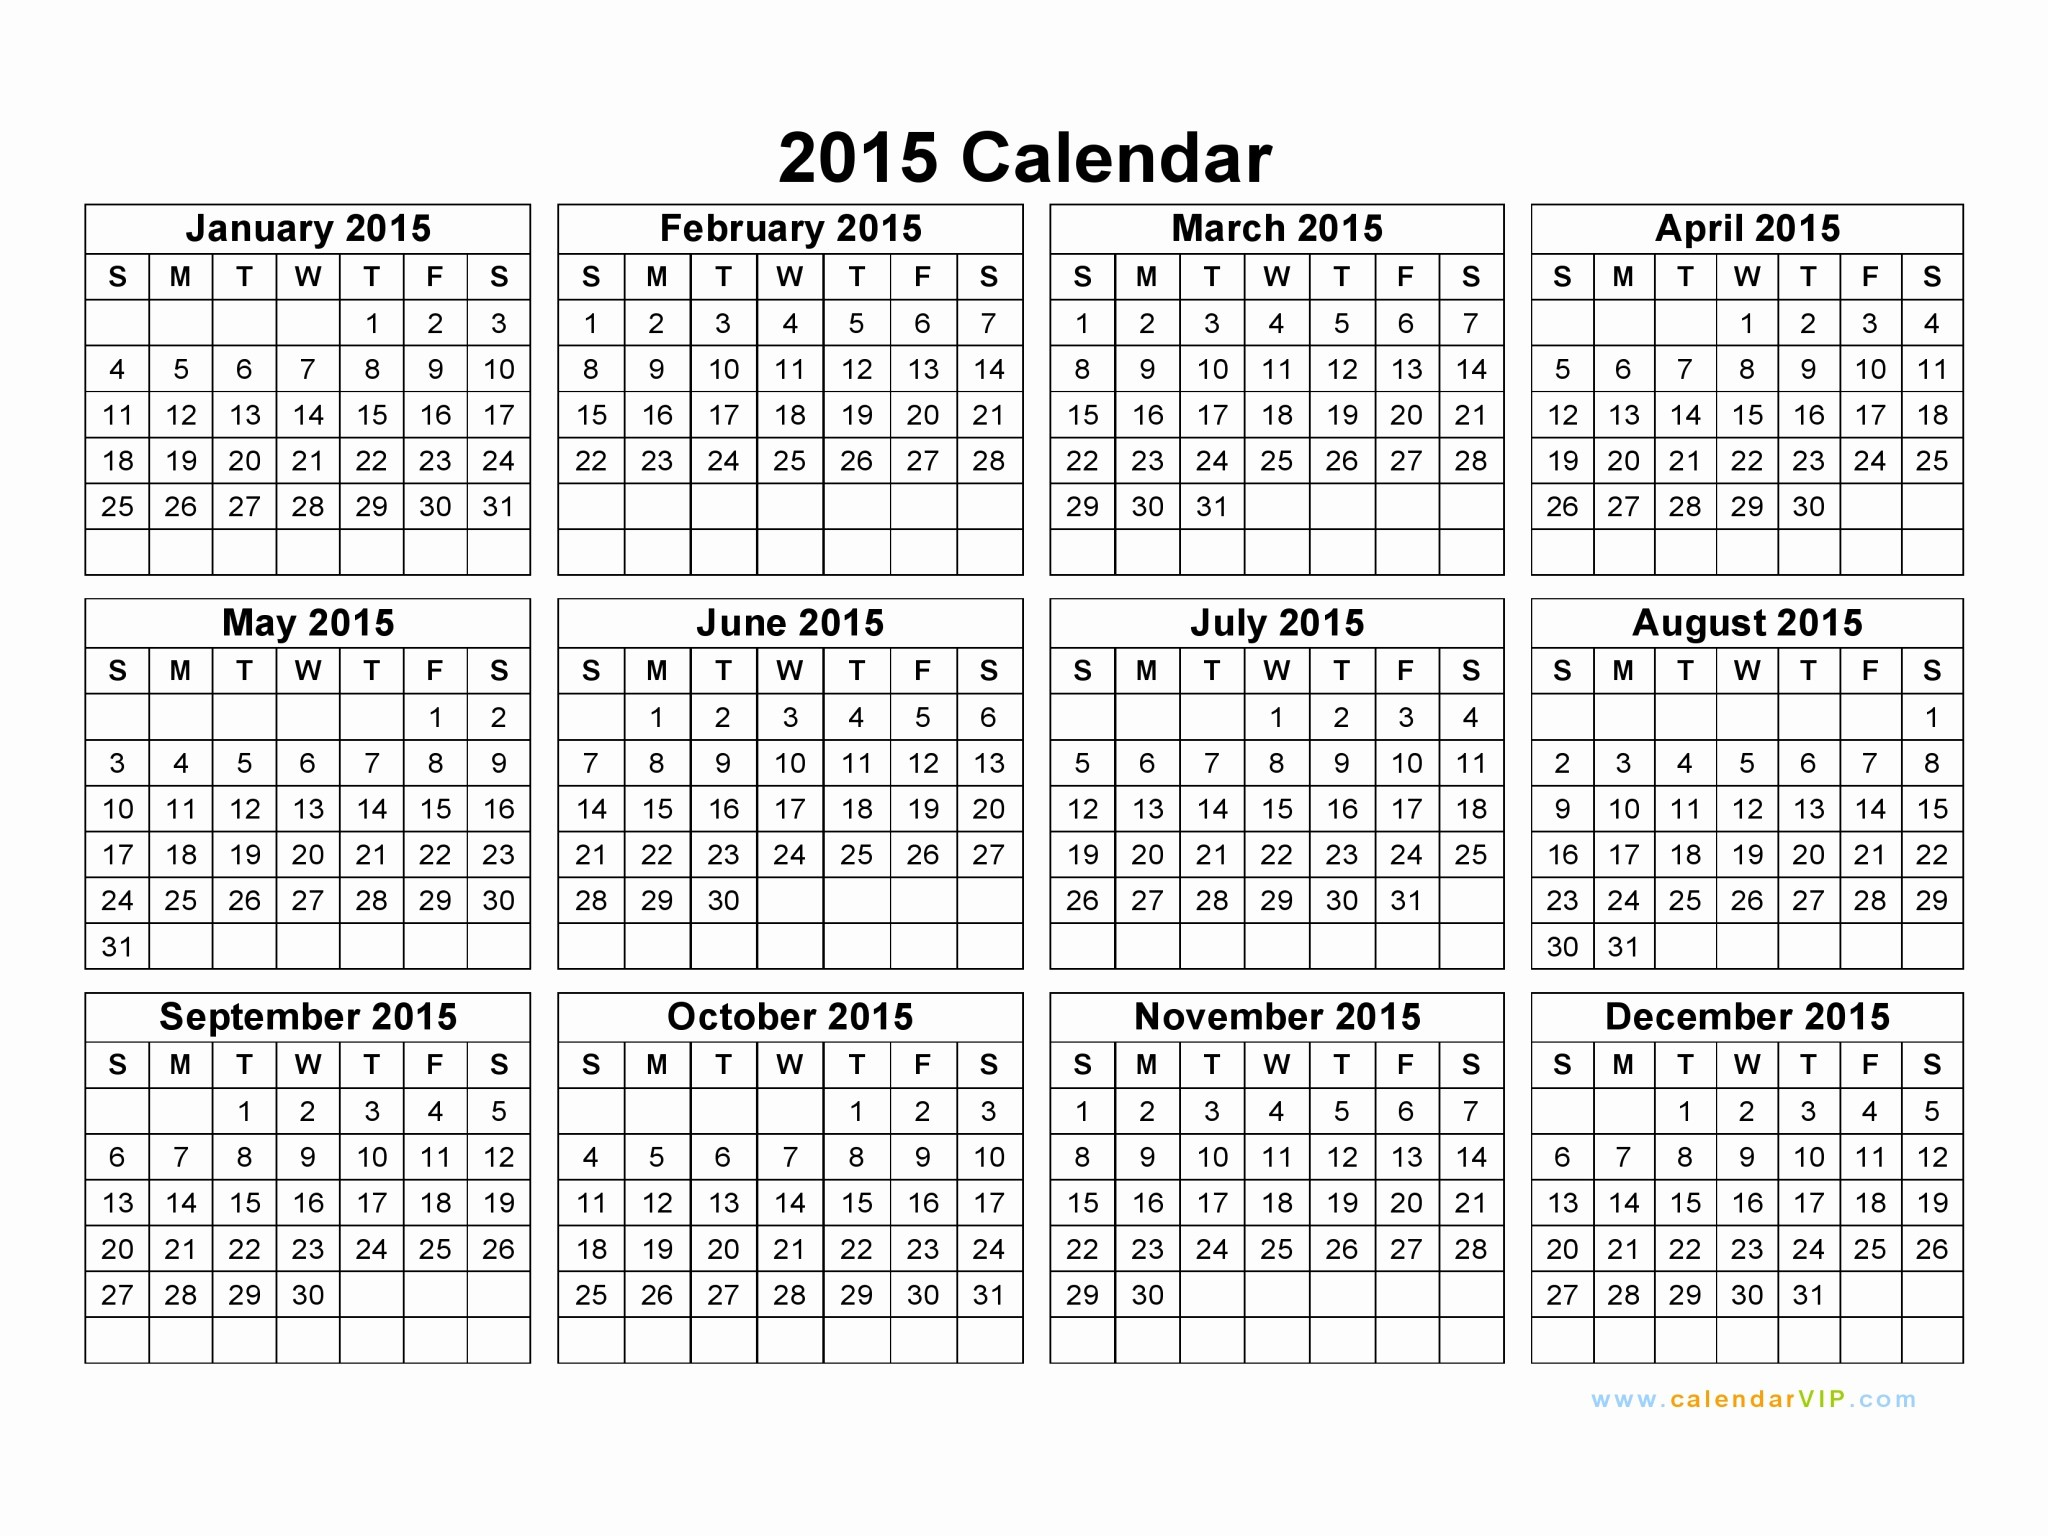 Calendar 2015 Printable with Holidays Inspirational 2015 Calendar Blank Printable Calendar Template In Pdf